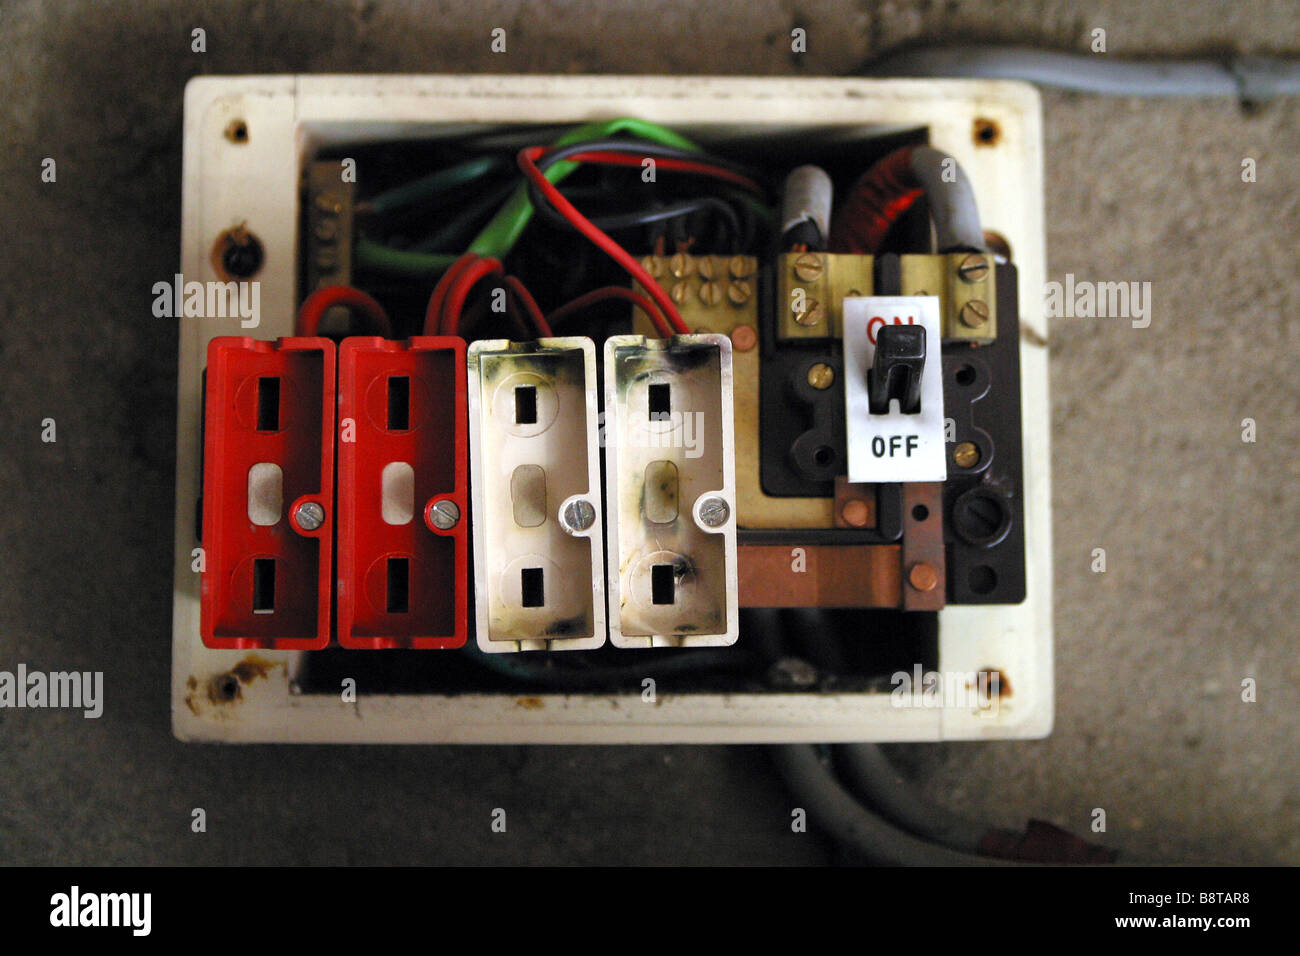 fuses for fuse box house simple wiring diagram schema old screw in fuse  boxes burnt fuse